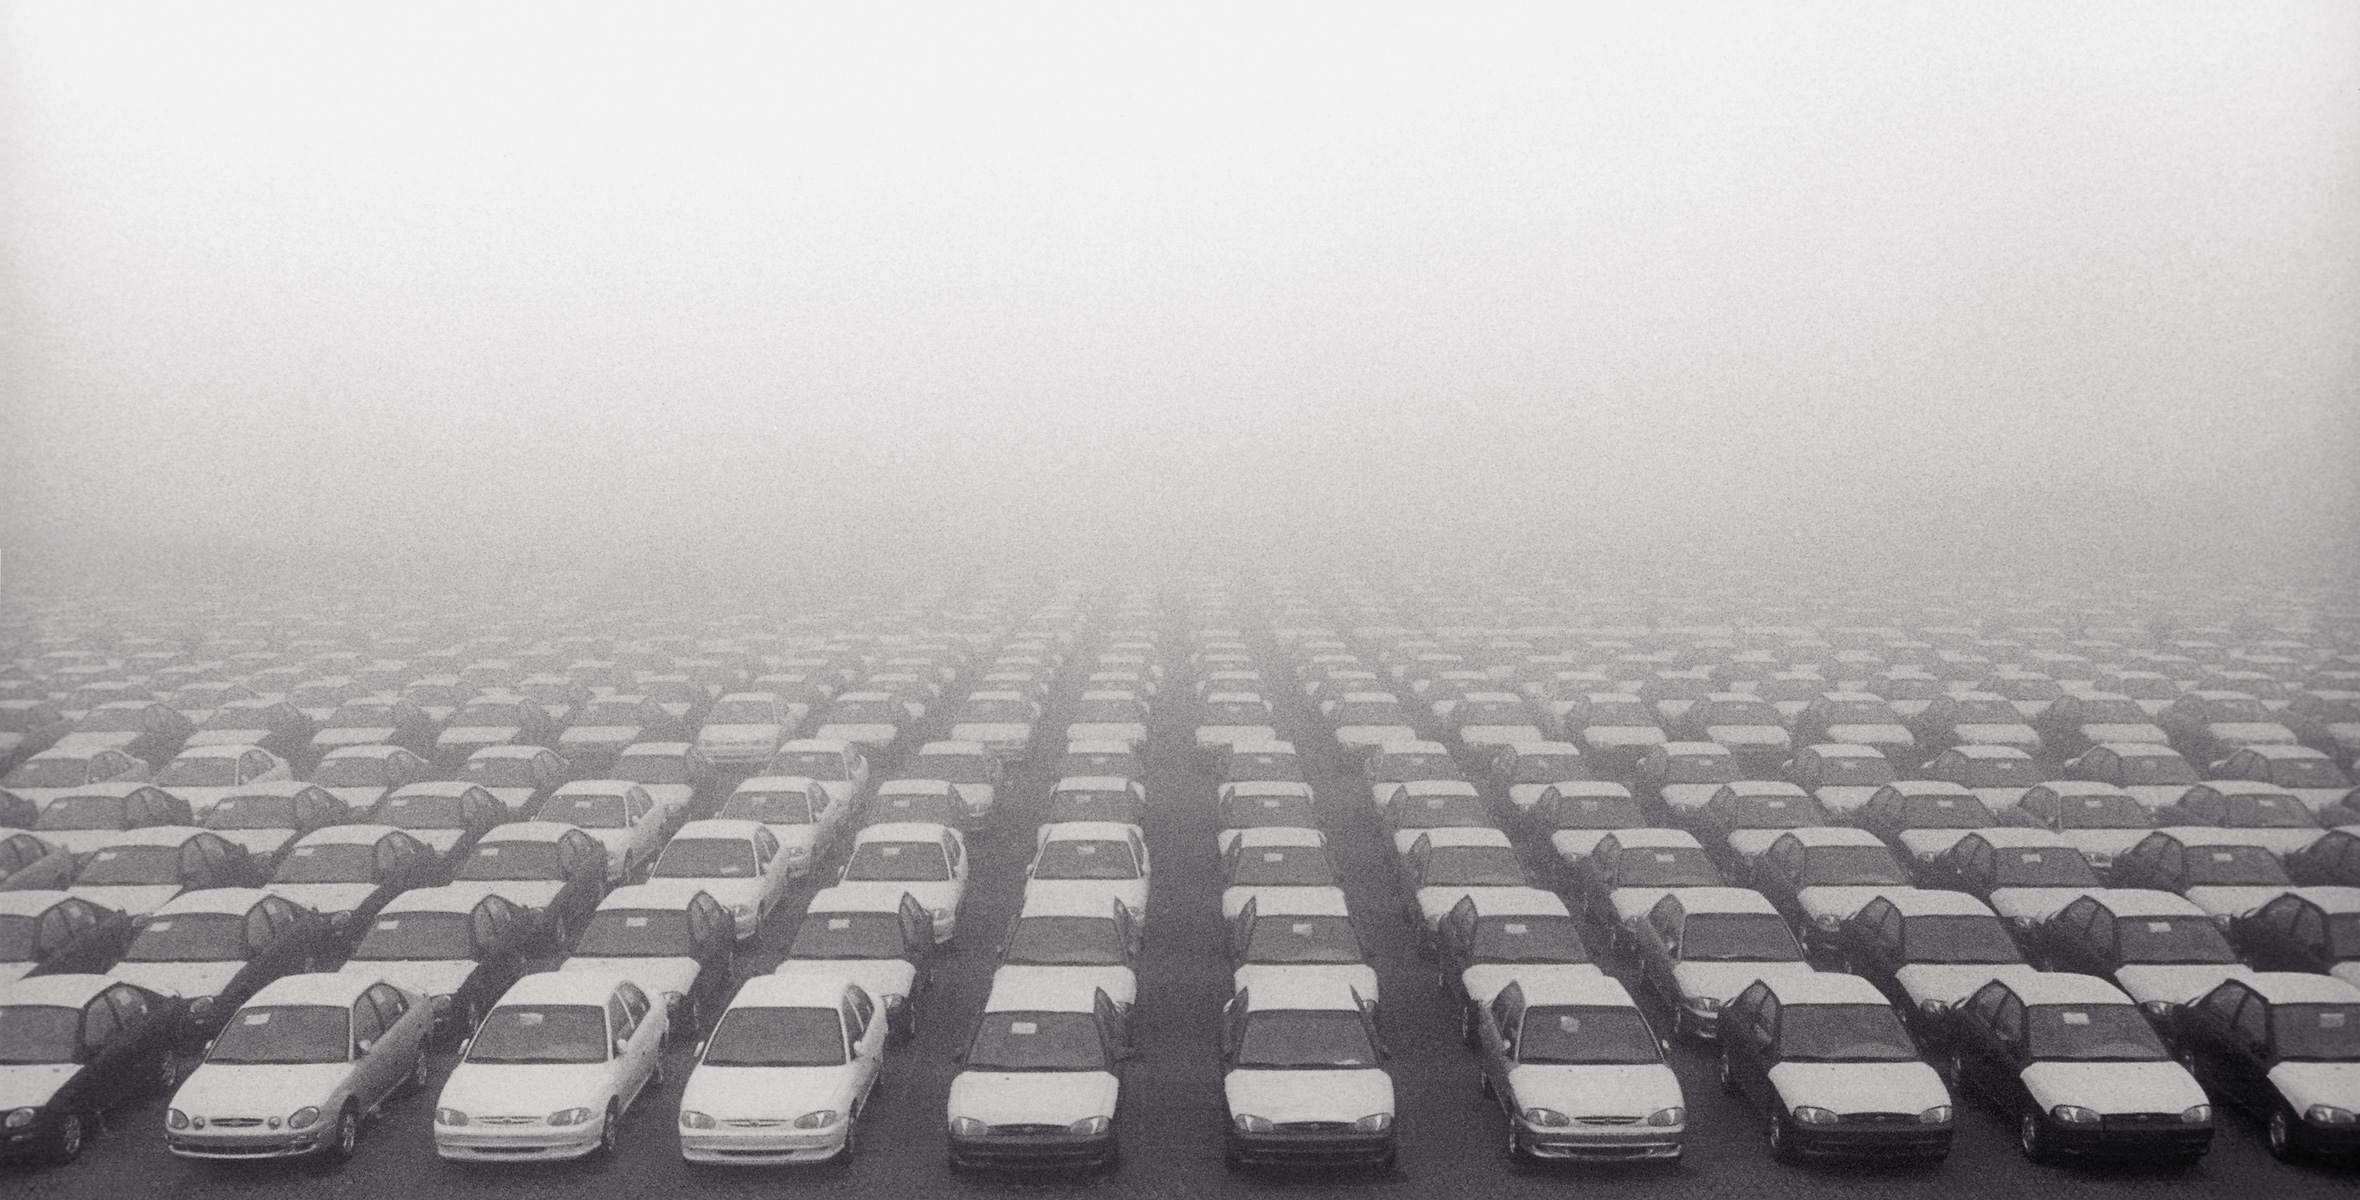 cars_in_fog-stephen_austin_welch